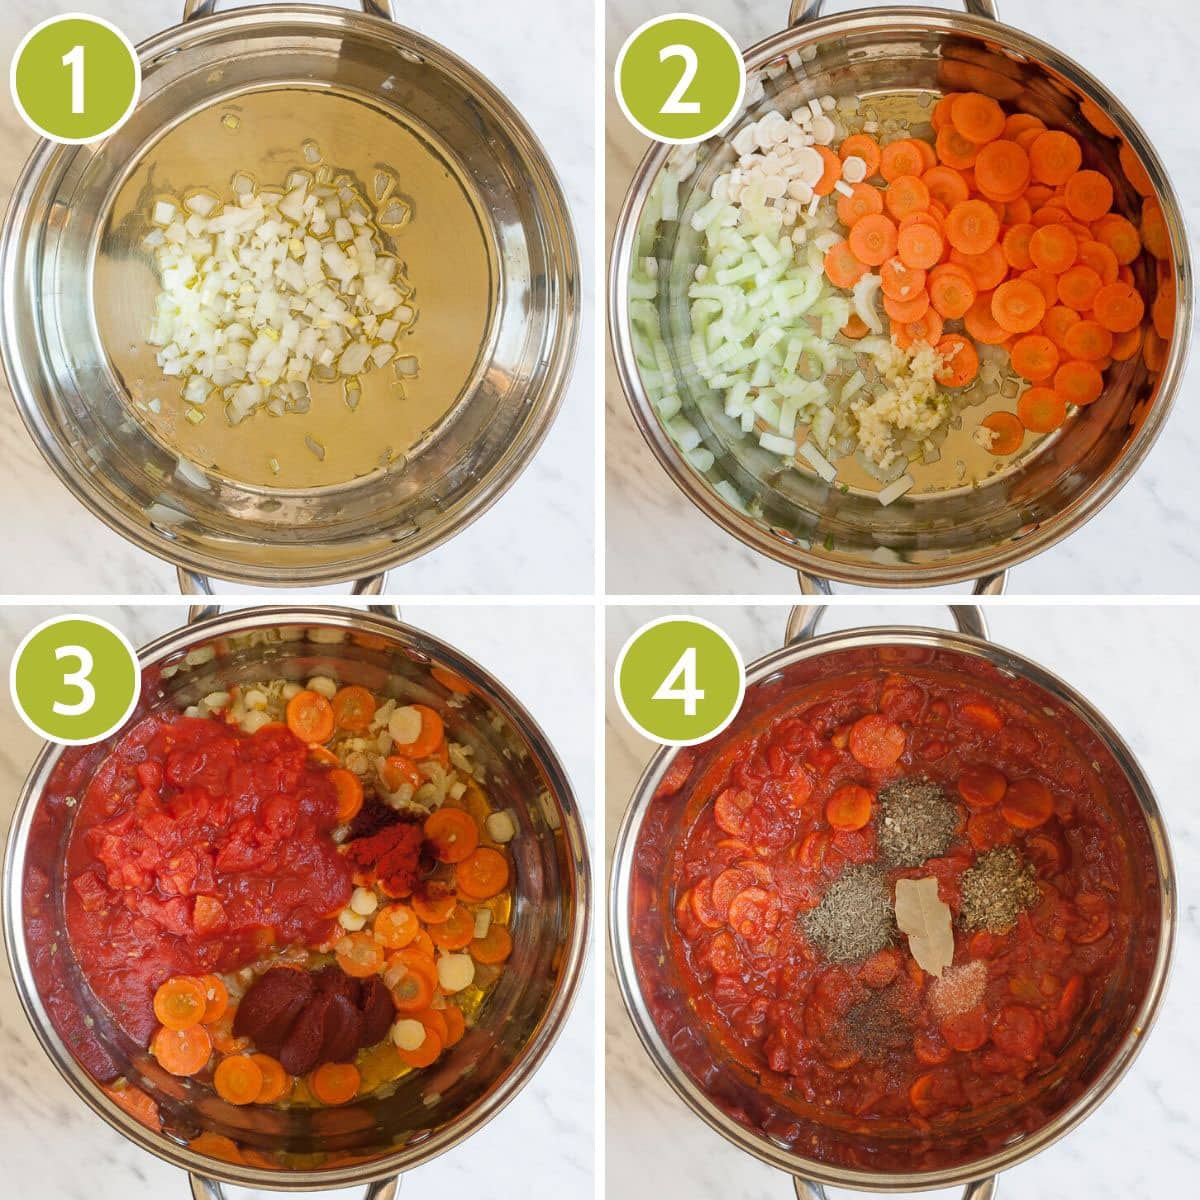 Step photos to make easy vegan minestrone soup showing the stockpot from above